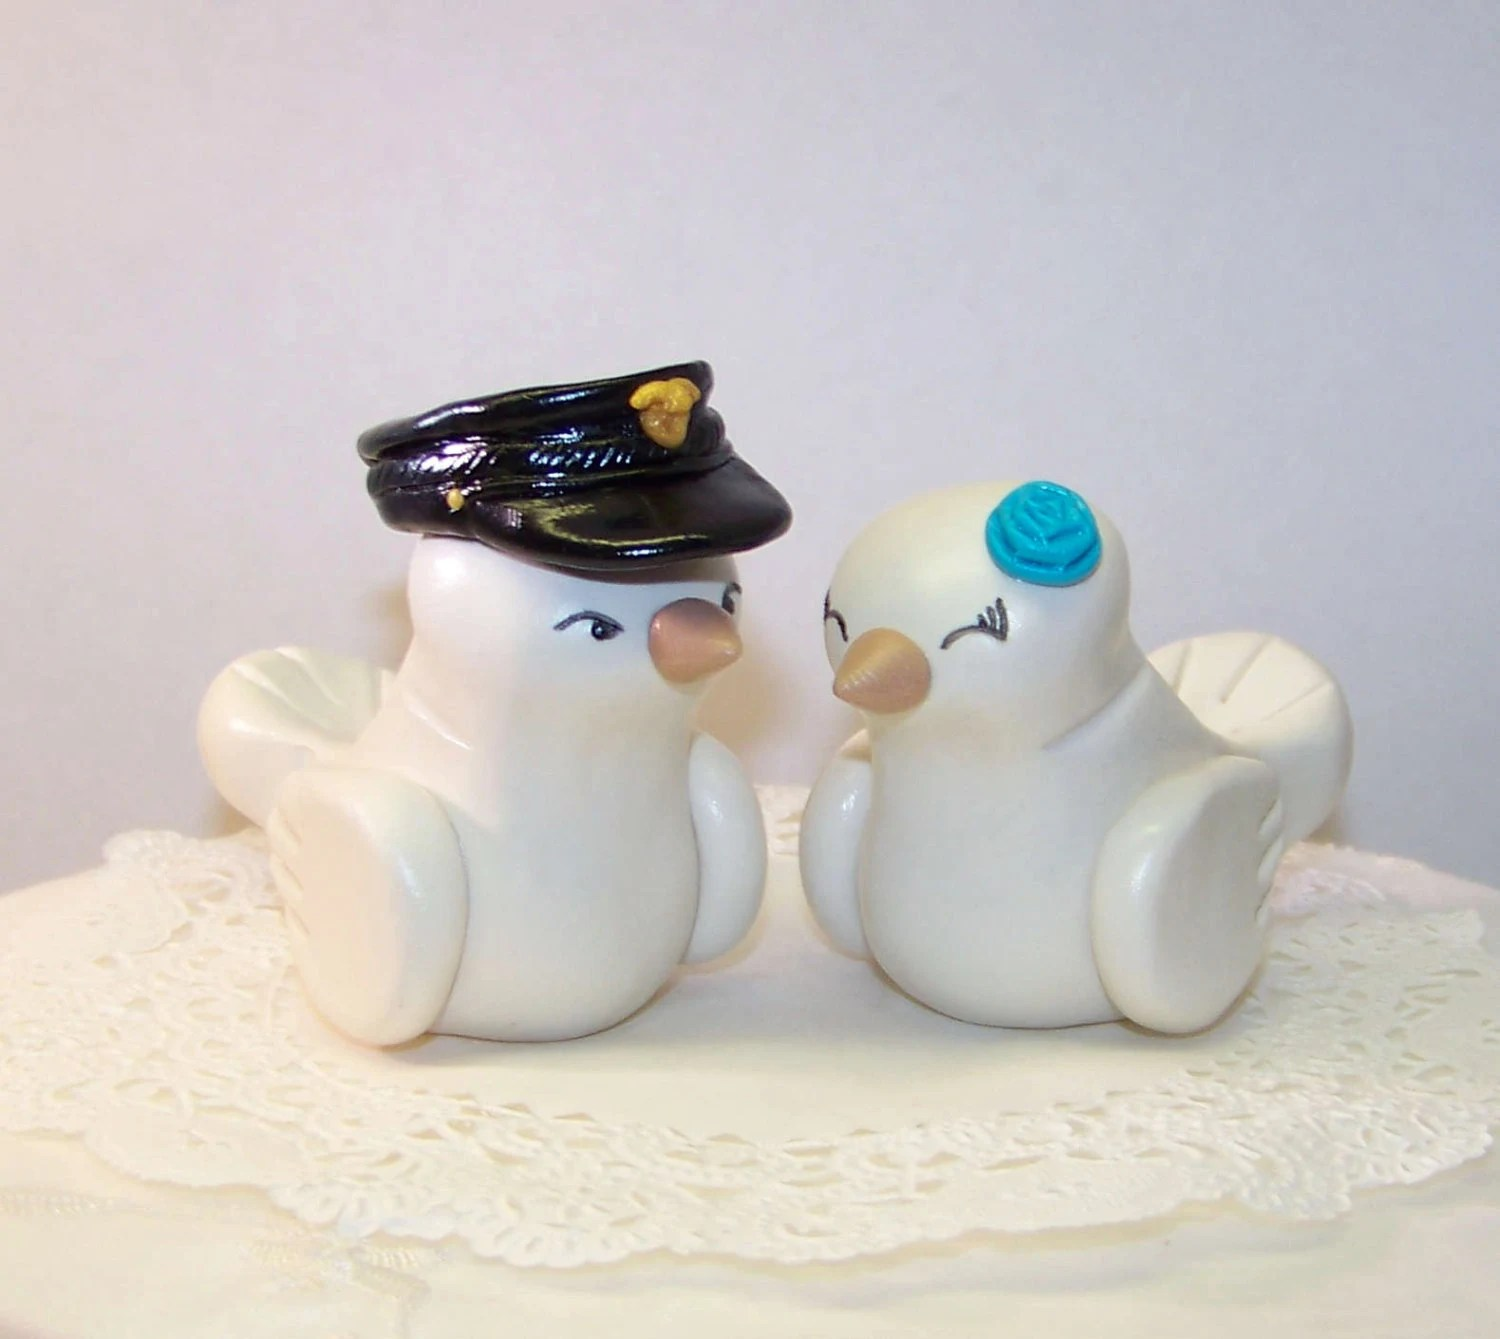 Police Officer Wedding Cake Topper Love Birds Cake Topper